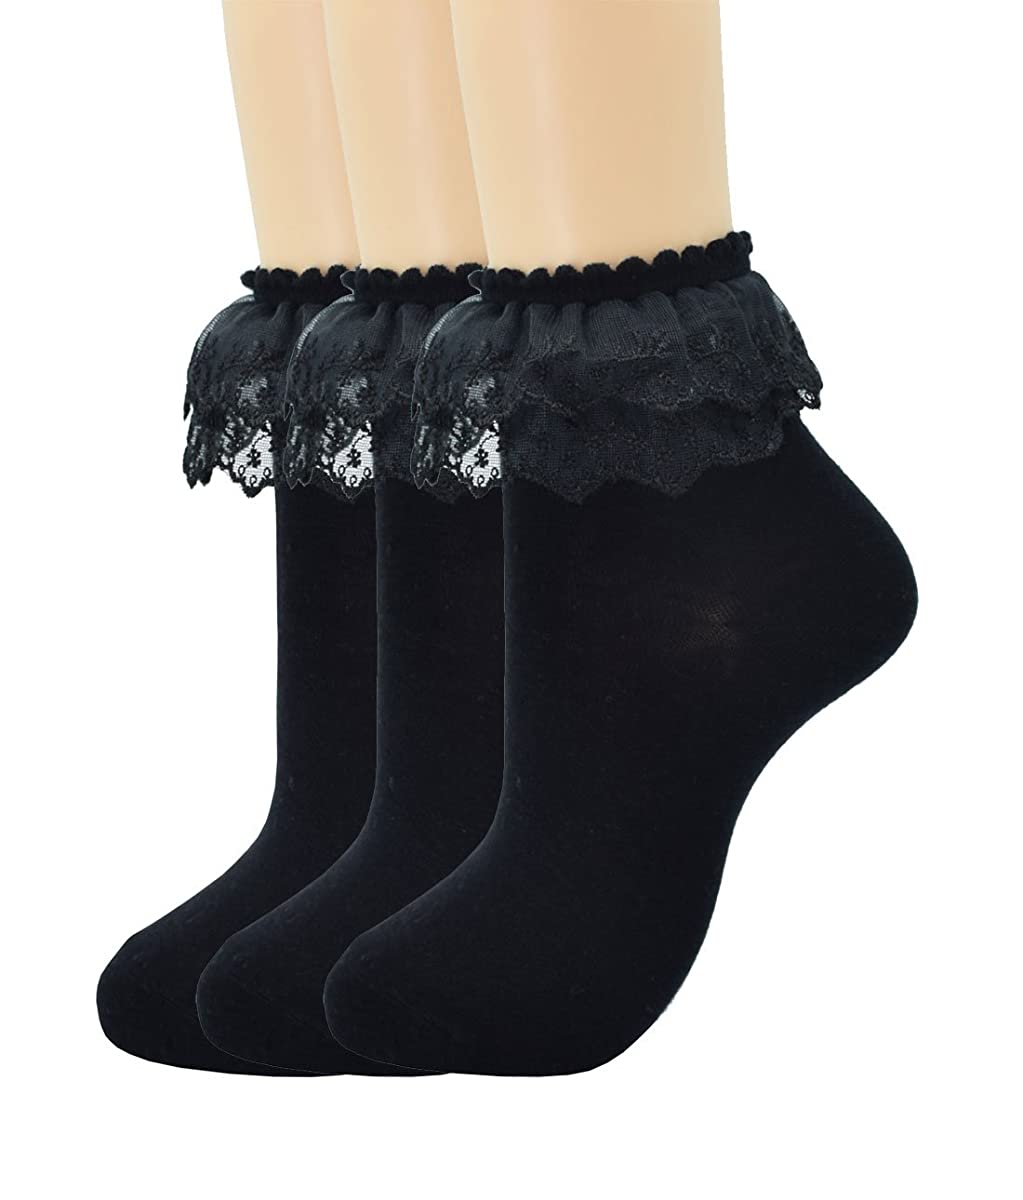 SRYL Women Lace Ruffle Frilly Ankle Socks Fashion Ladies Girl Princess H08